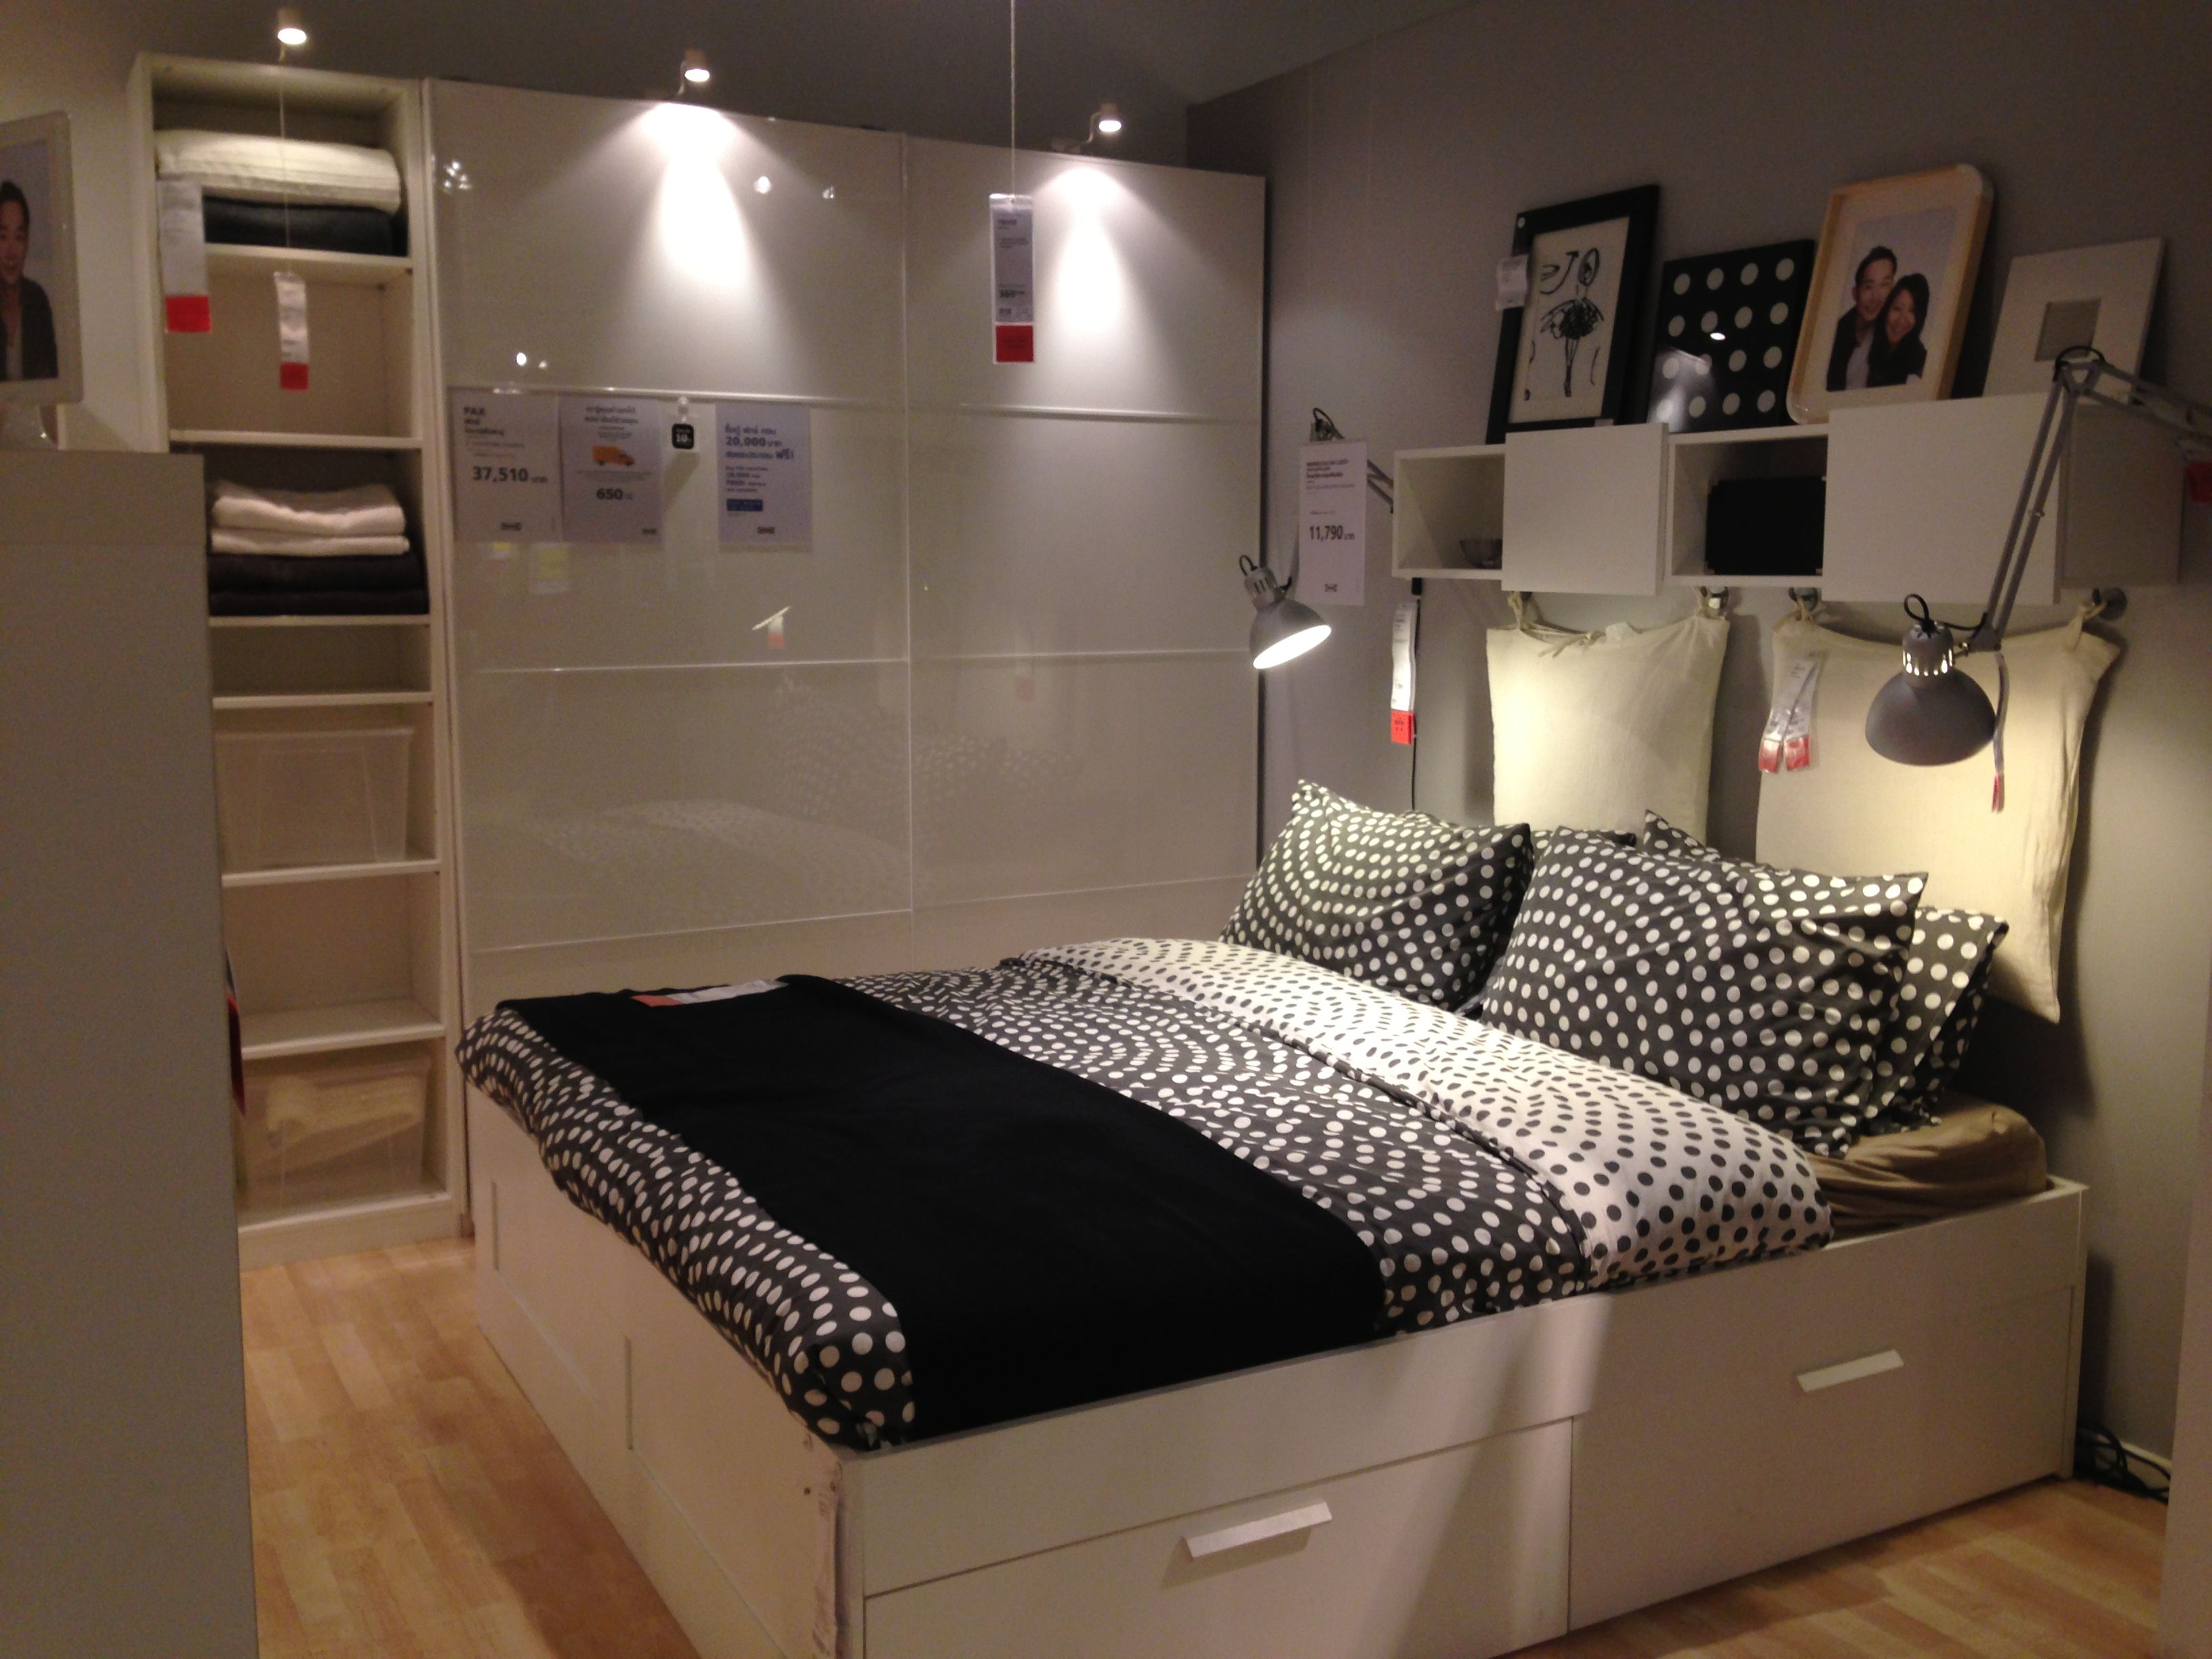 Showroom Bedroom at iKea | Ikea ✓ | Ikea showroom, Bedroom ...